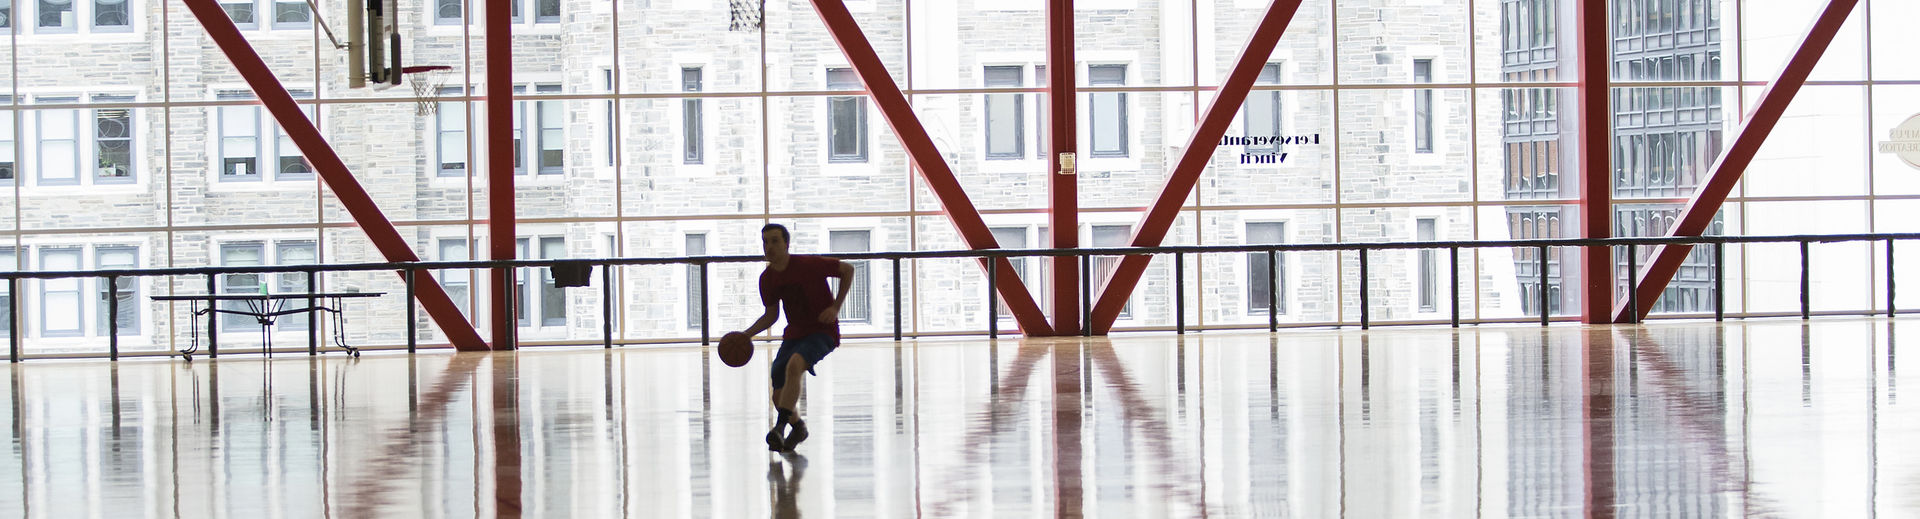 a student practicing basketball alone in the Pearson & McGonigle courts.